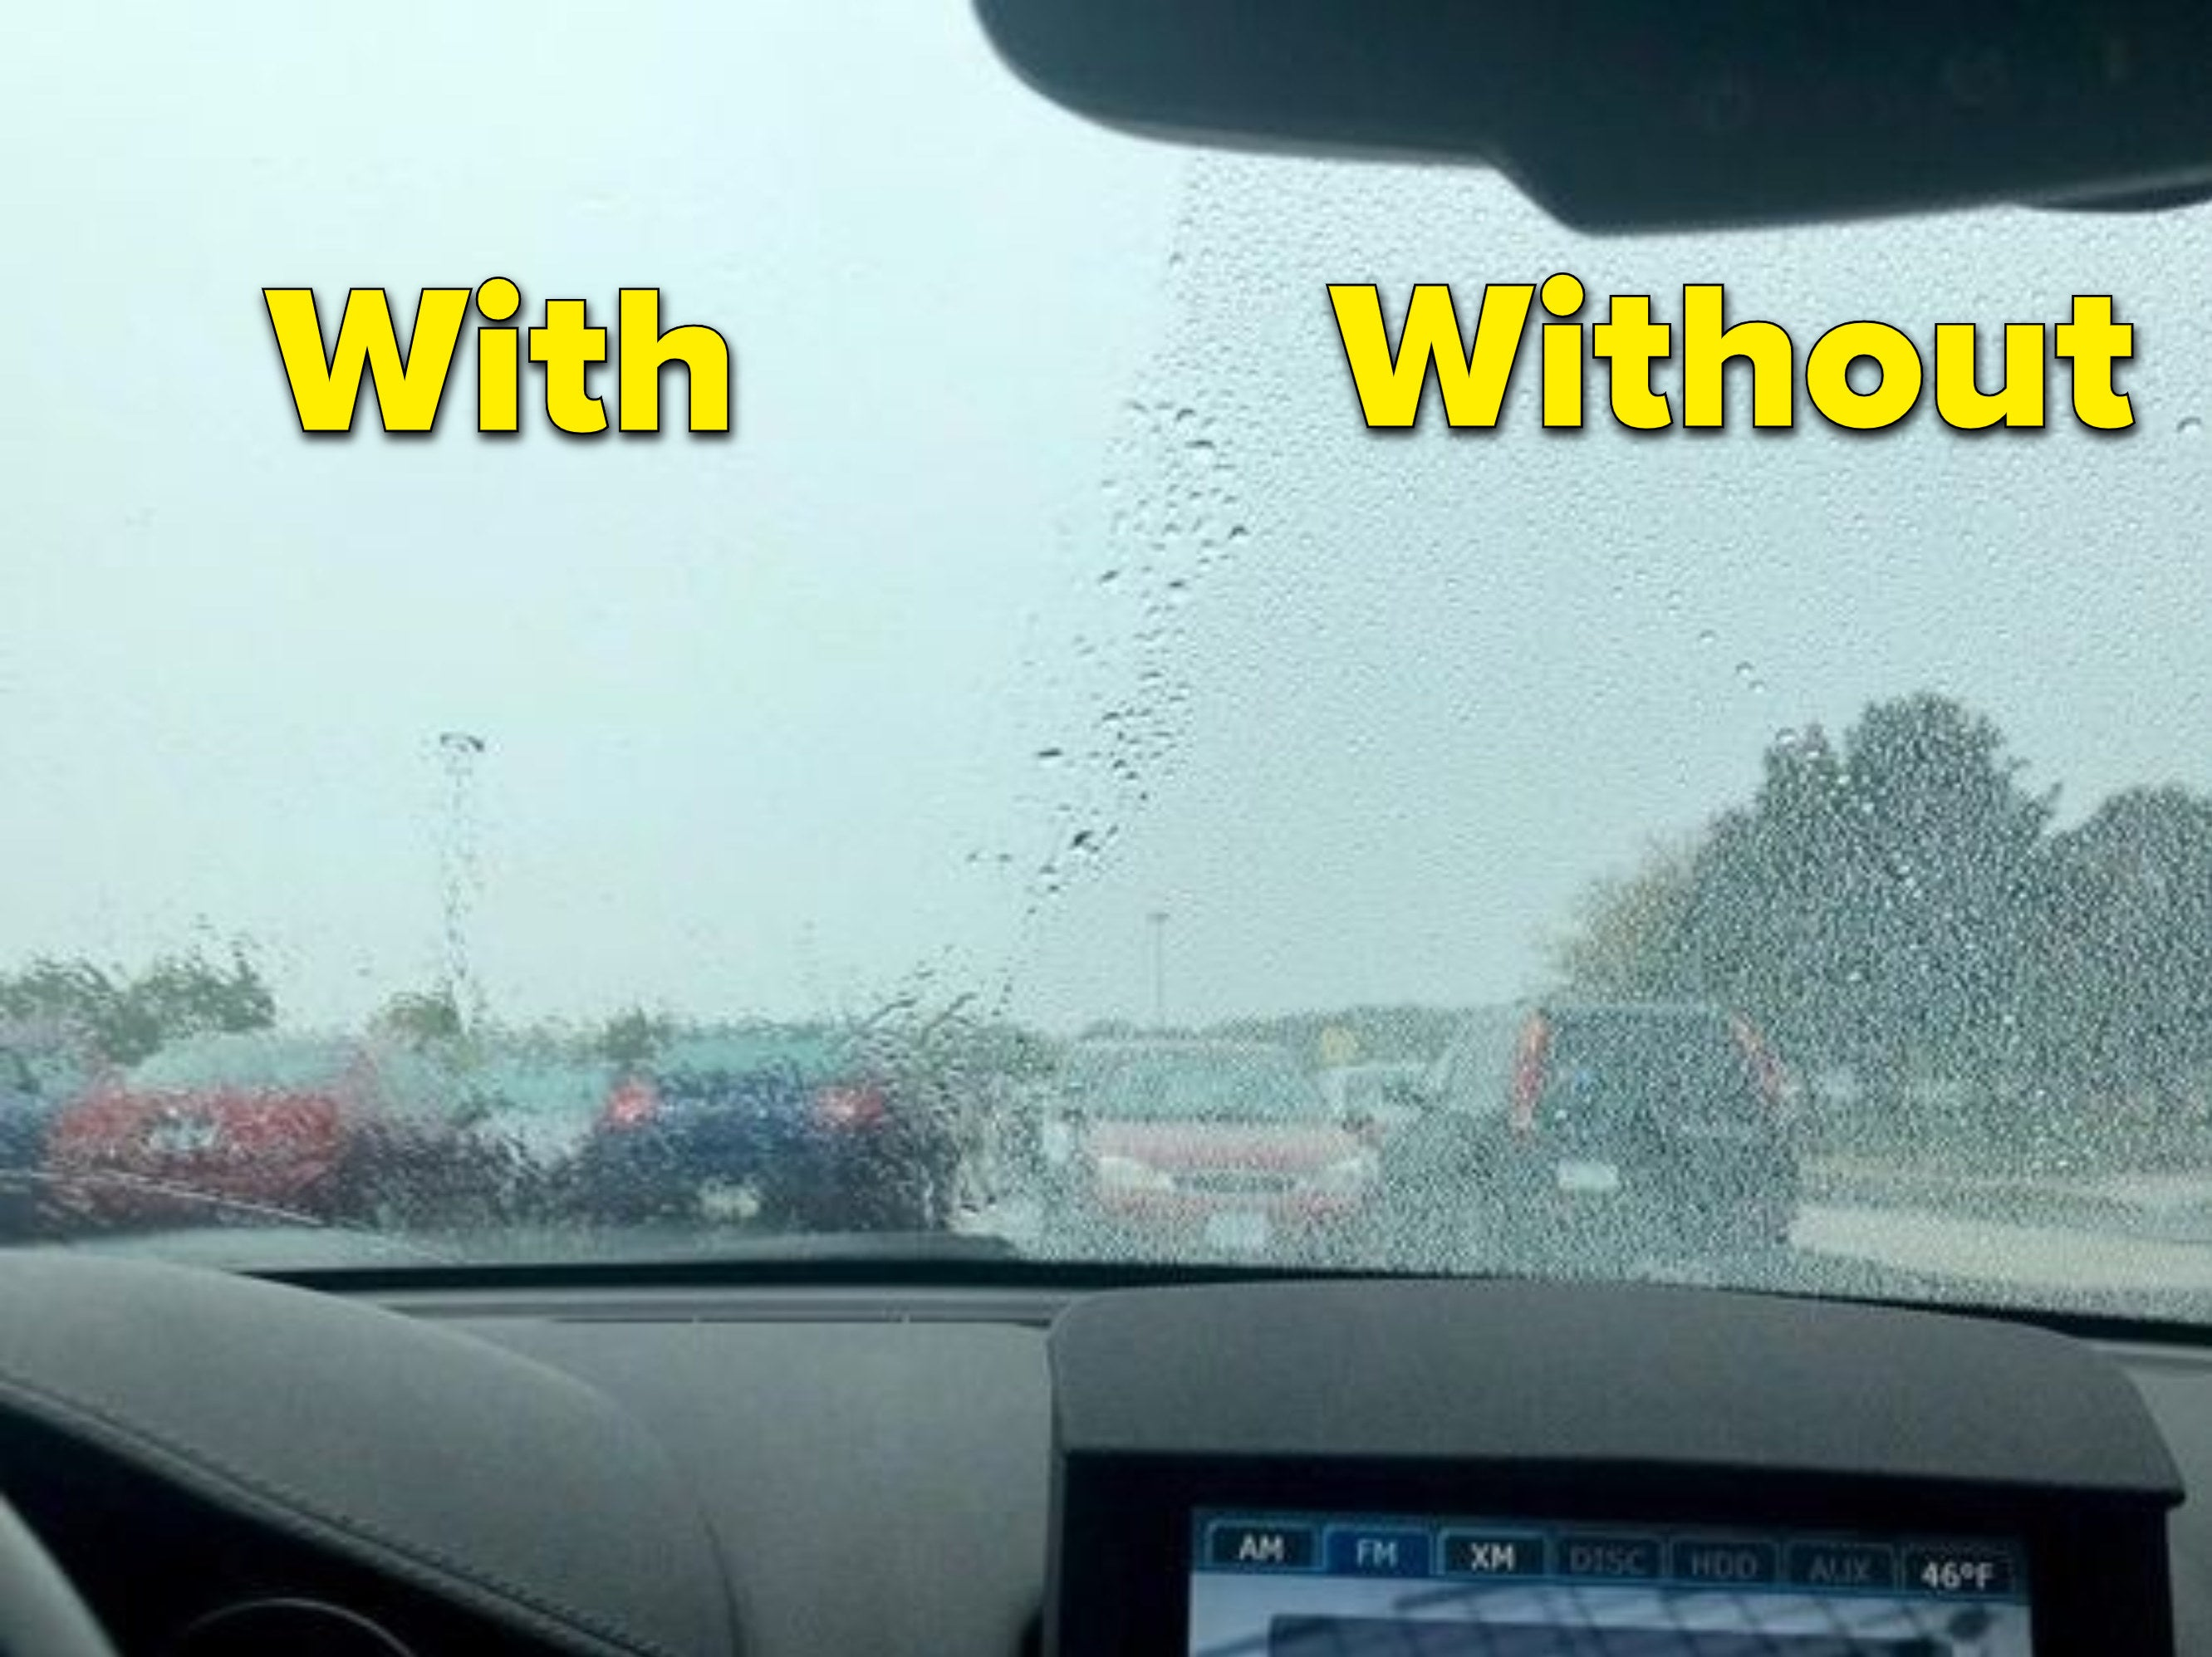 Reviewer's car to show how one half of their windshield is clear, while the other untreated half is covered in raindrops